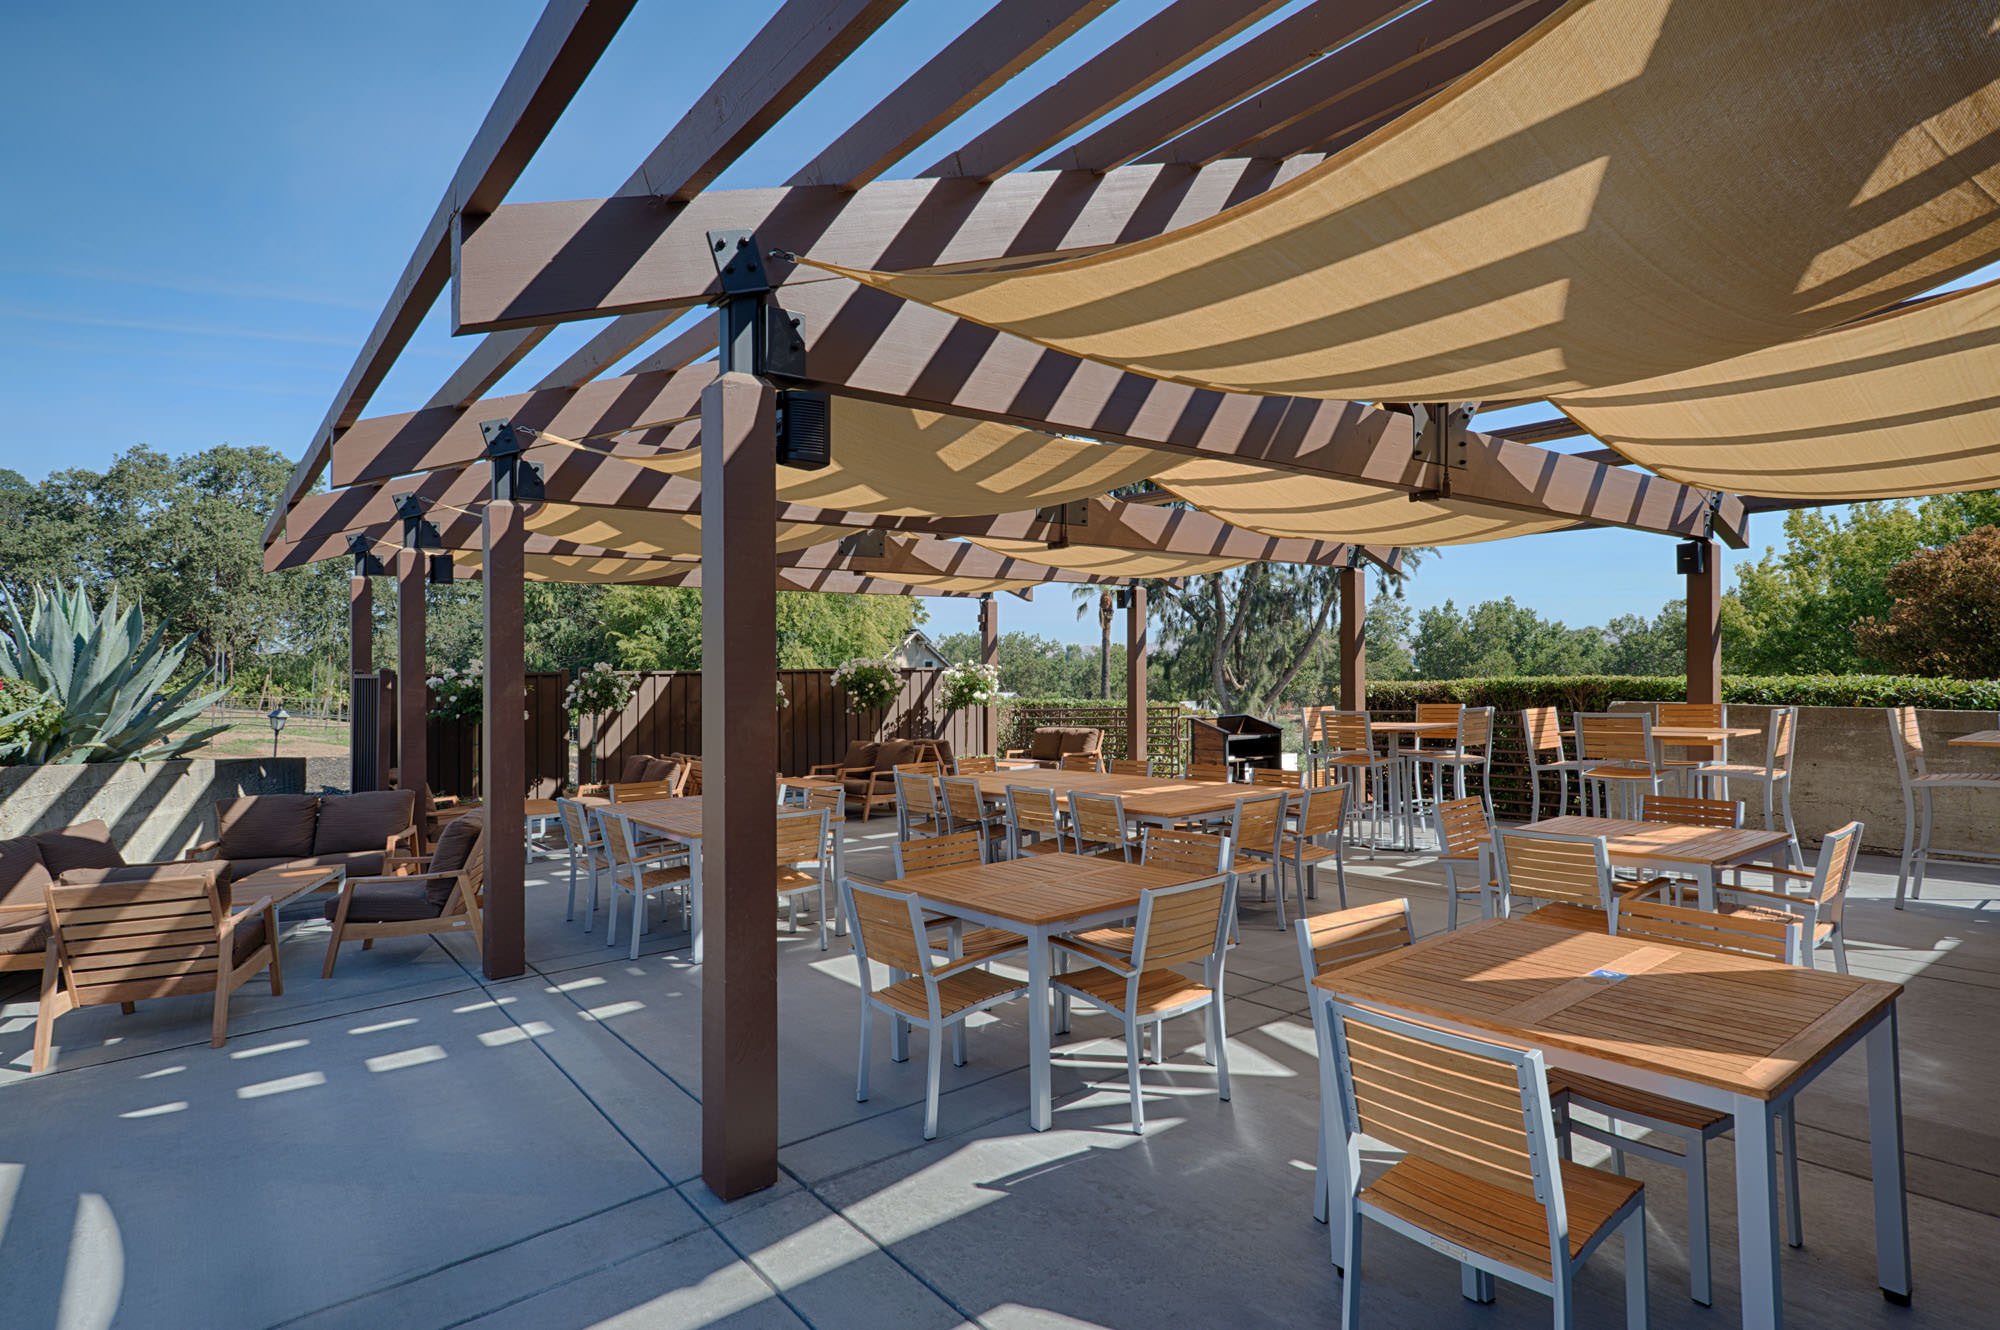 Outdoor Terrace and Shade at Winery